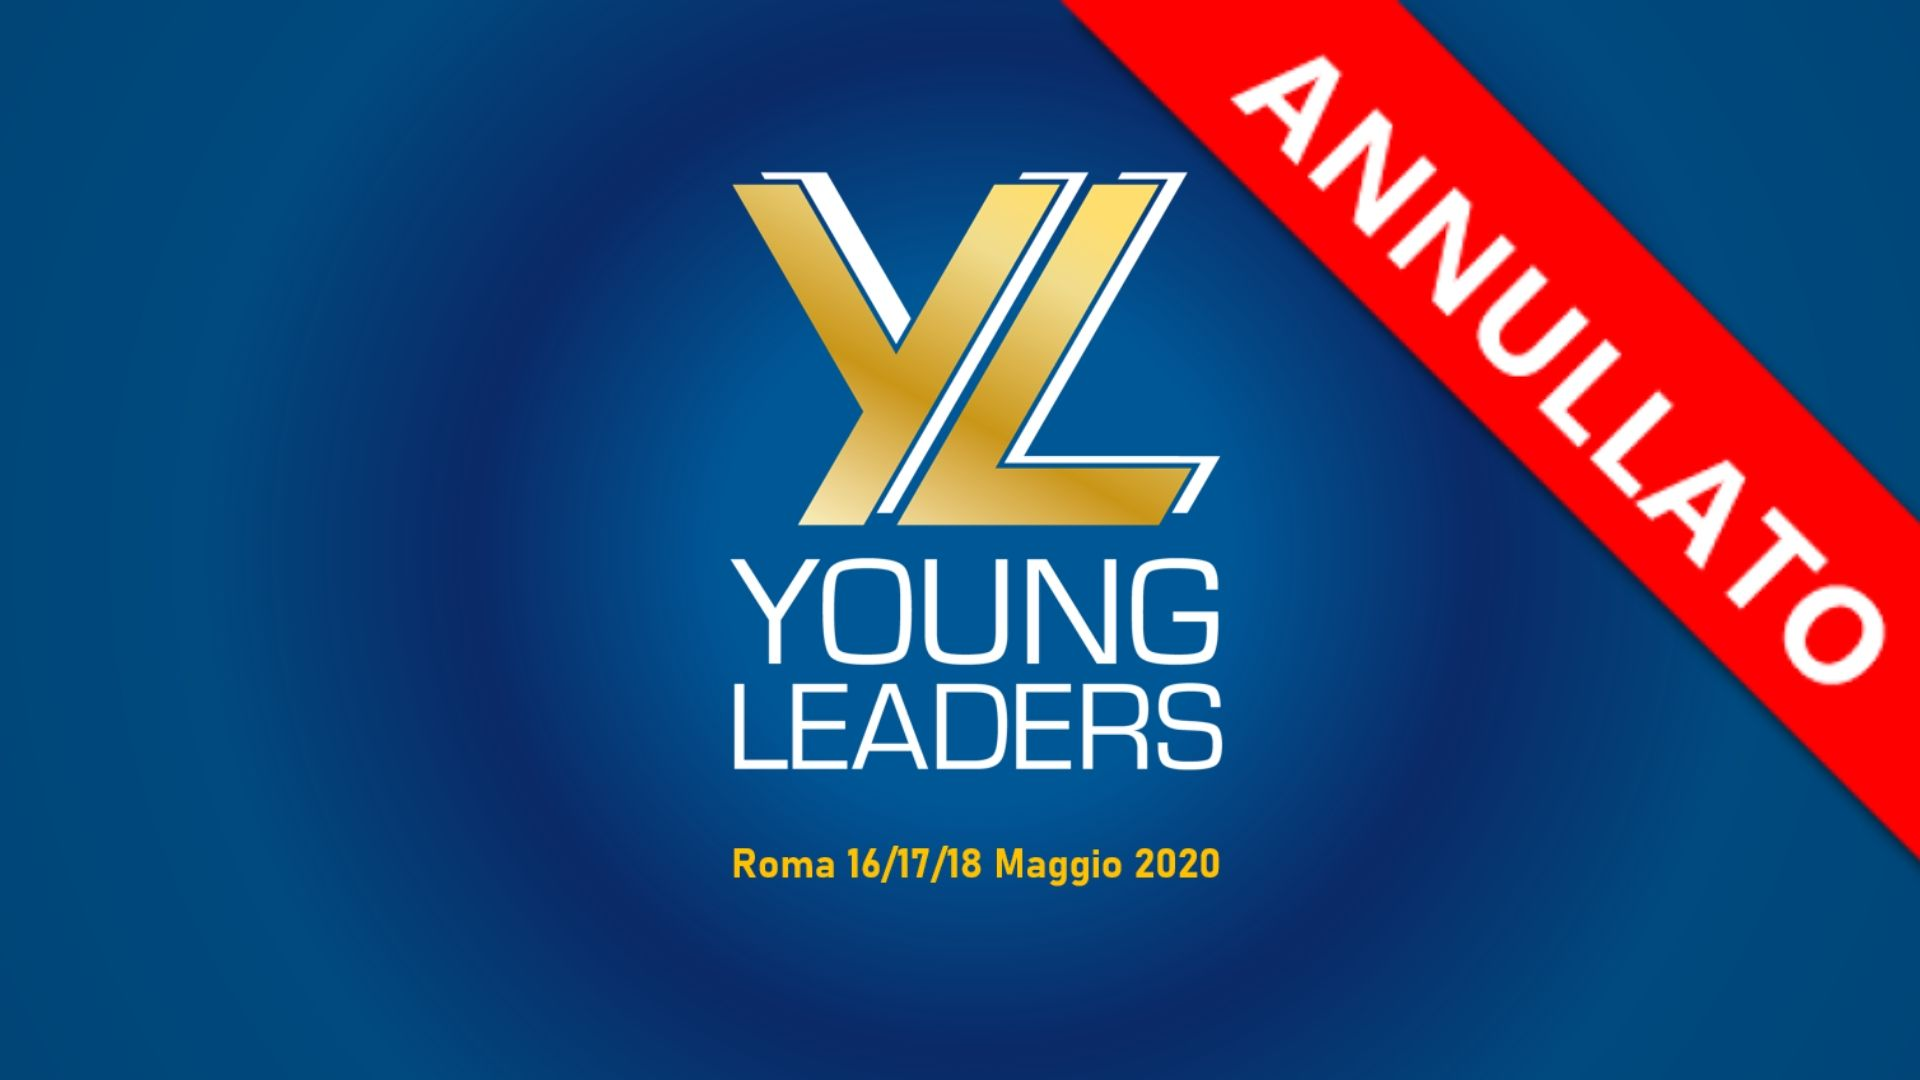 ANNULLATO EVENTO DEL PROGETTO YOUNG LEADERS ITALY